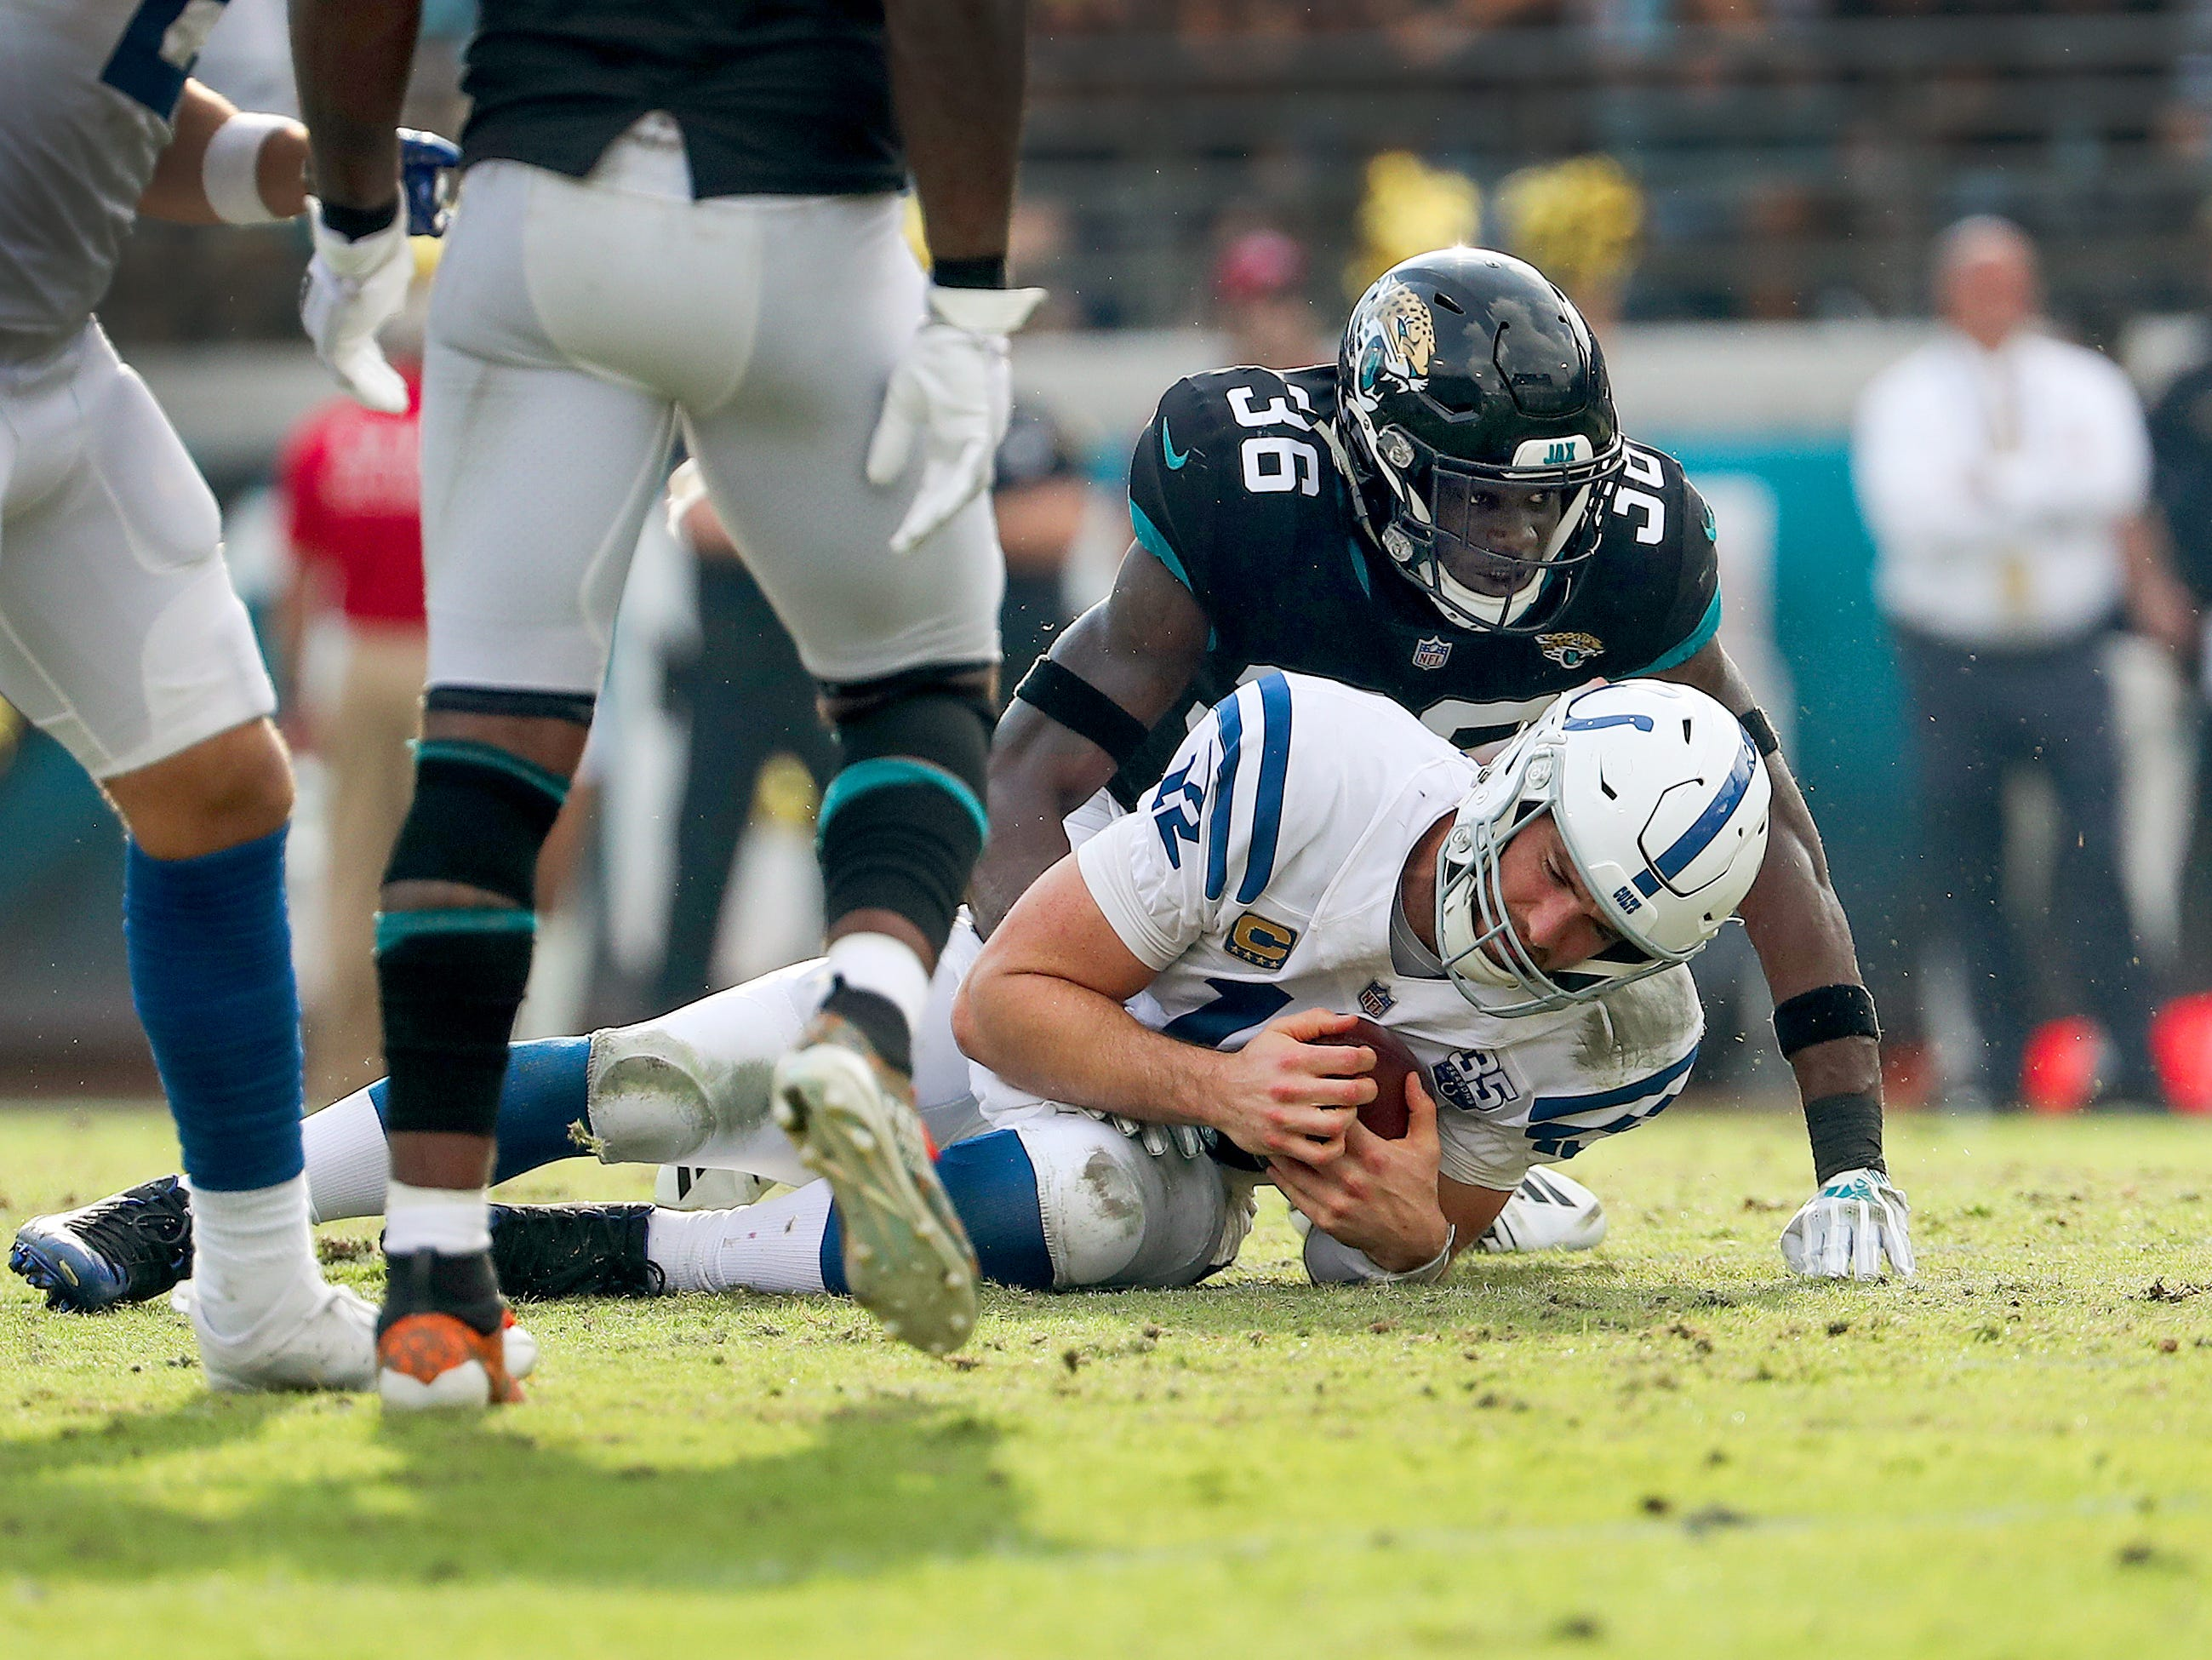 Indianapolis Colts quarterback Andrew Luck (12) is sacked by Jacksonville Jaguars defensive back Ronnie Harrison (36) in the second half of their game at TIAA Bank Field on Thursday, Dec. 2, 2018. The Jacksonville Jaguars defeated the Colts 6-0.